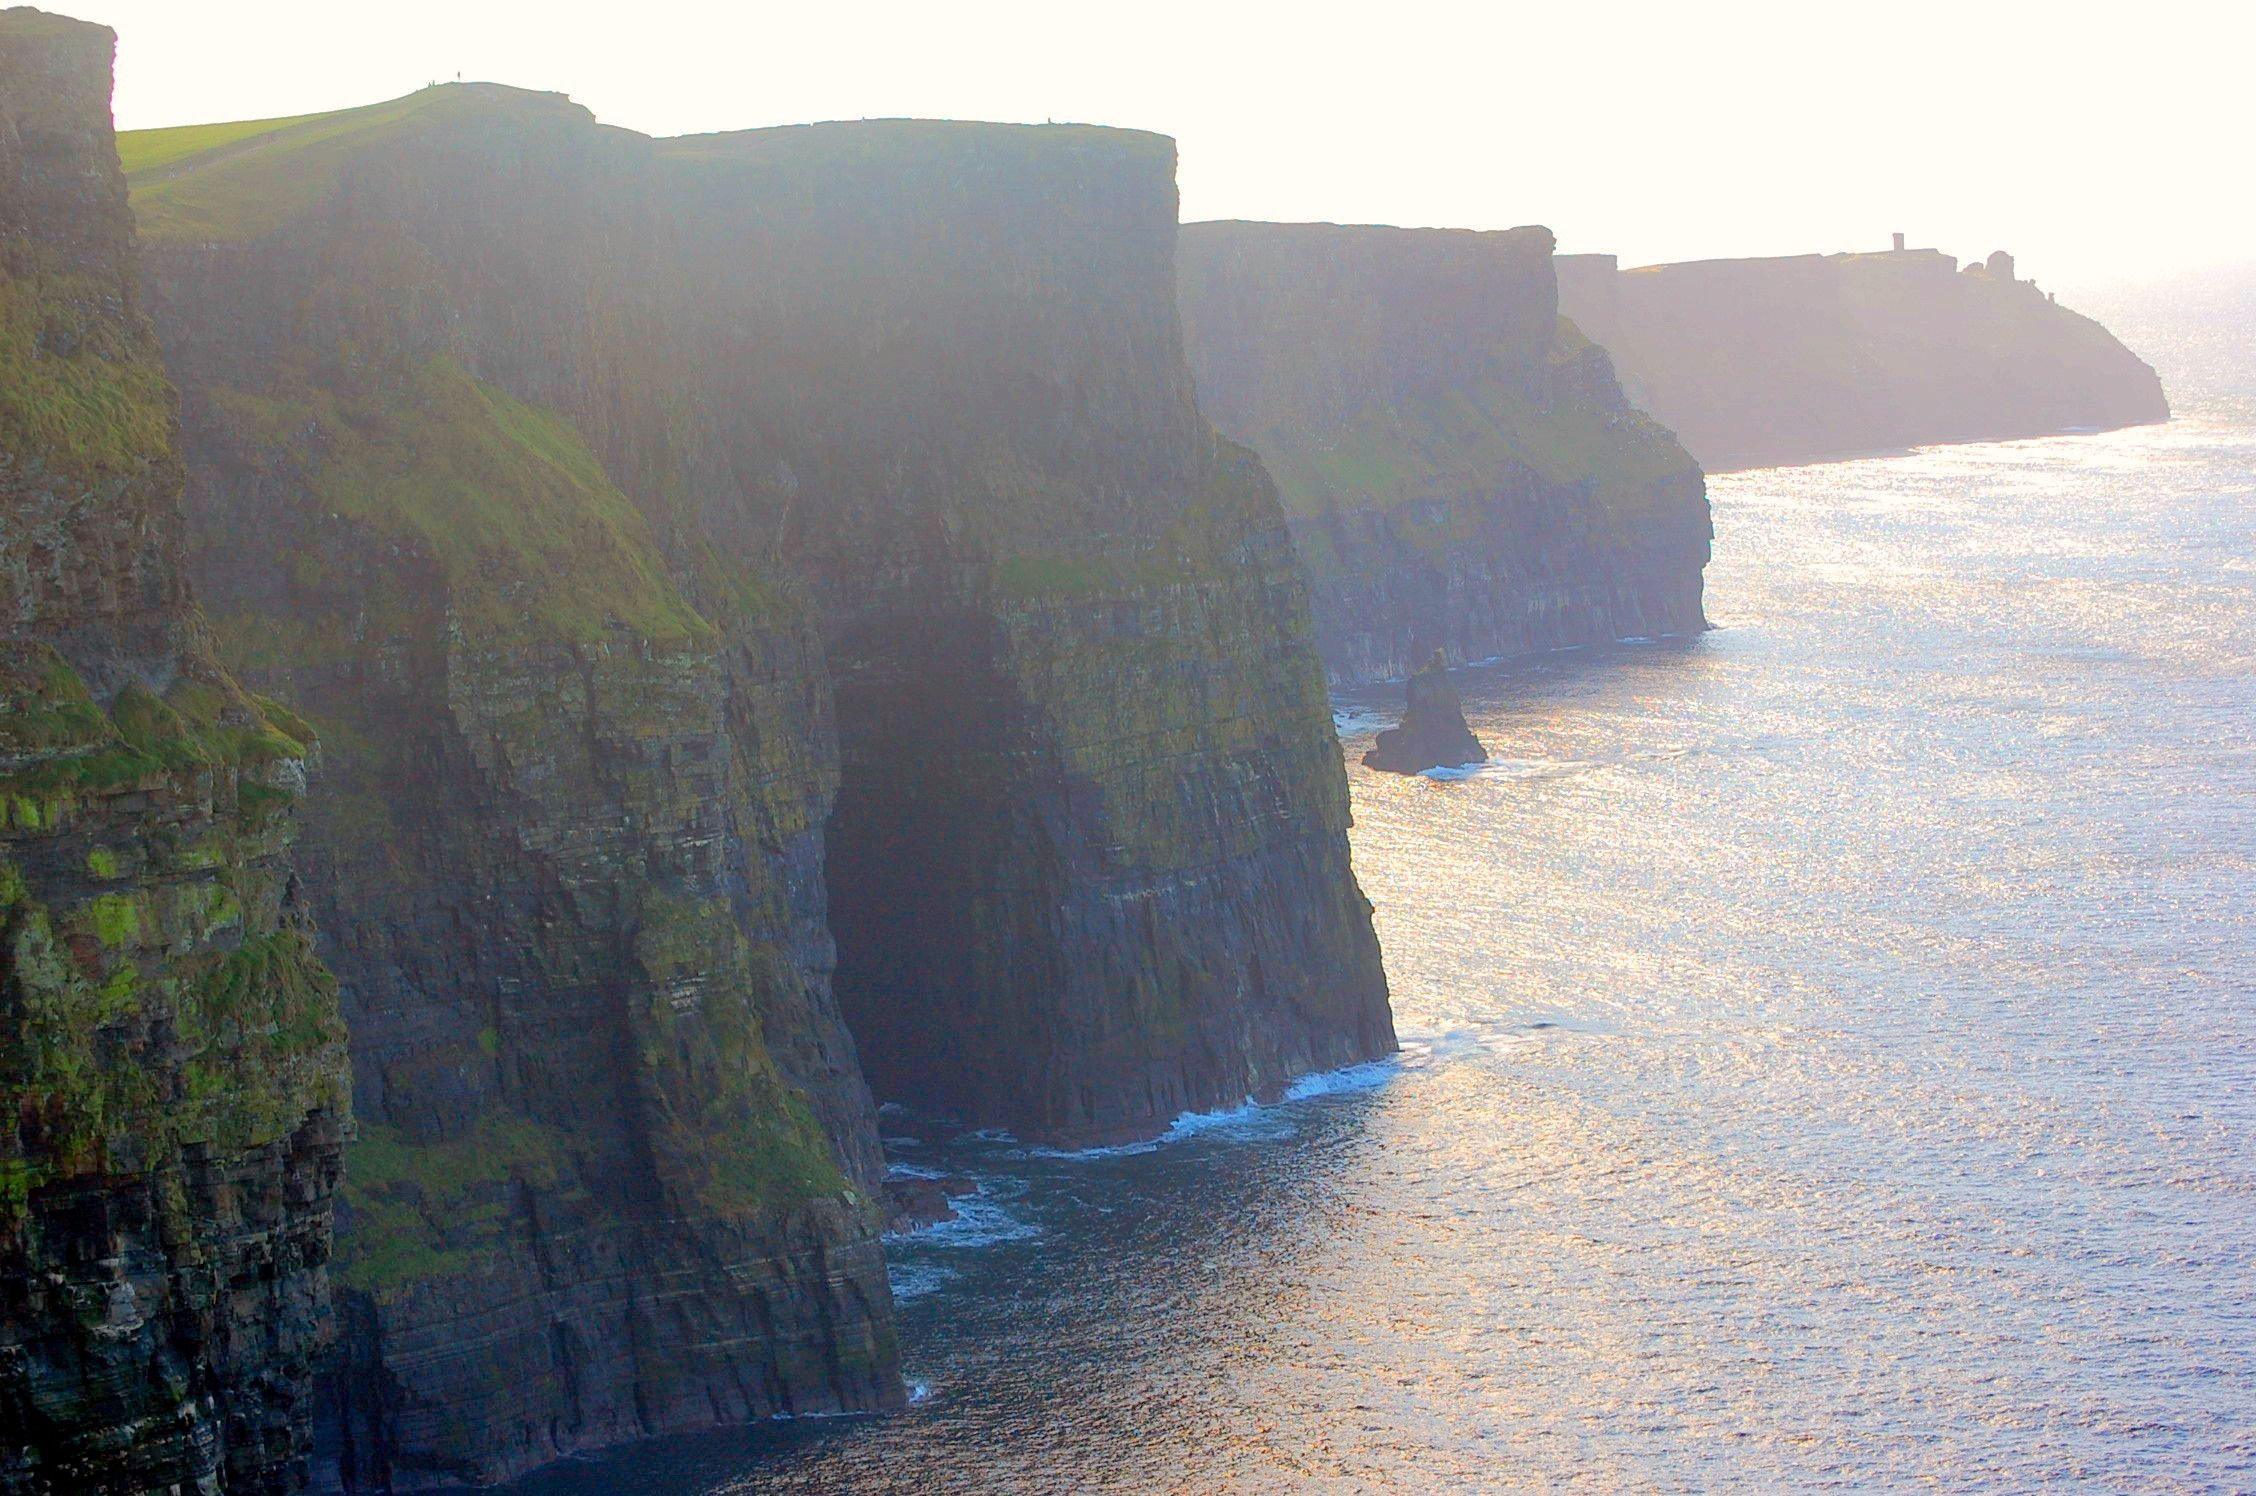 The Cliffs of Insanity